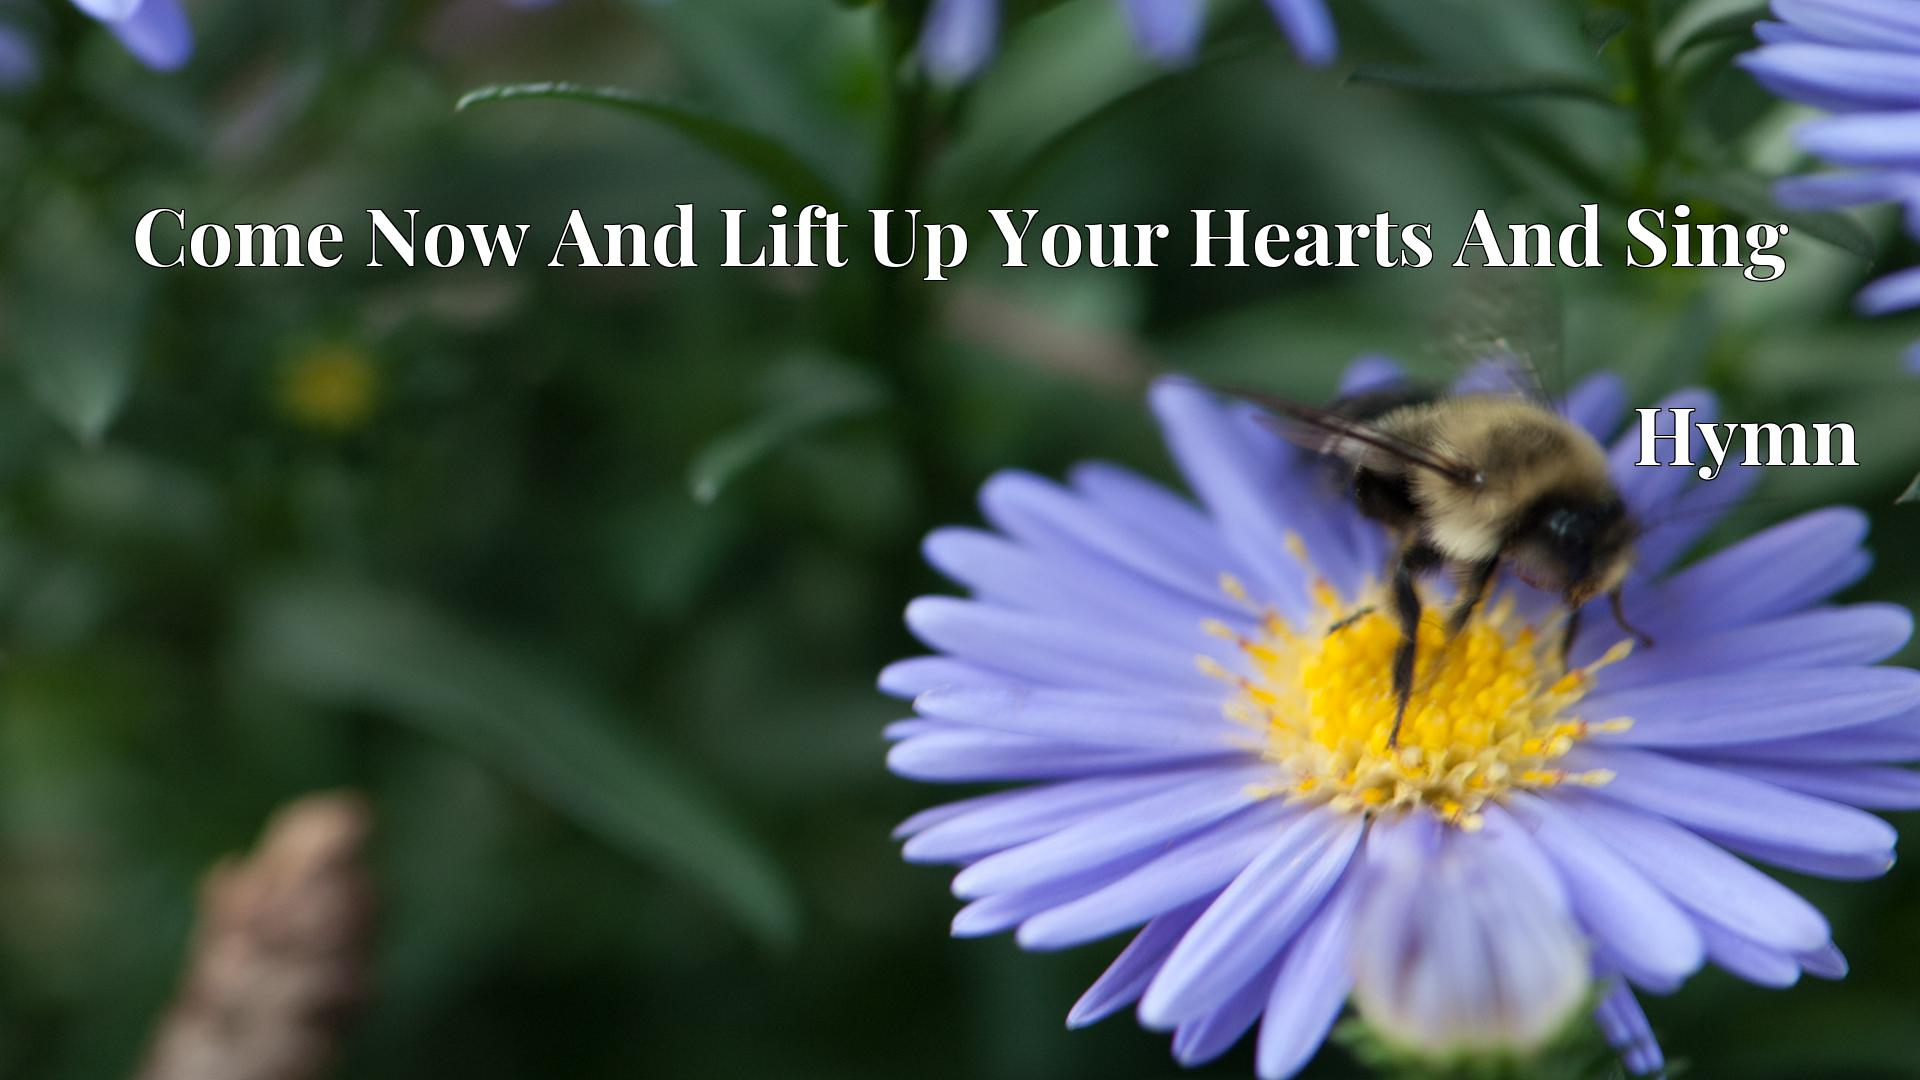 Come Now And Lift Up Your Hearts And Sing Hymn Lyric